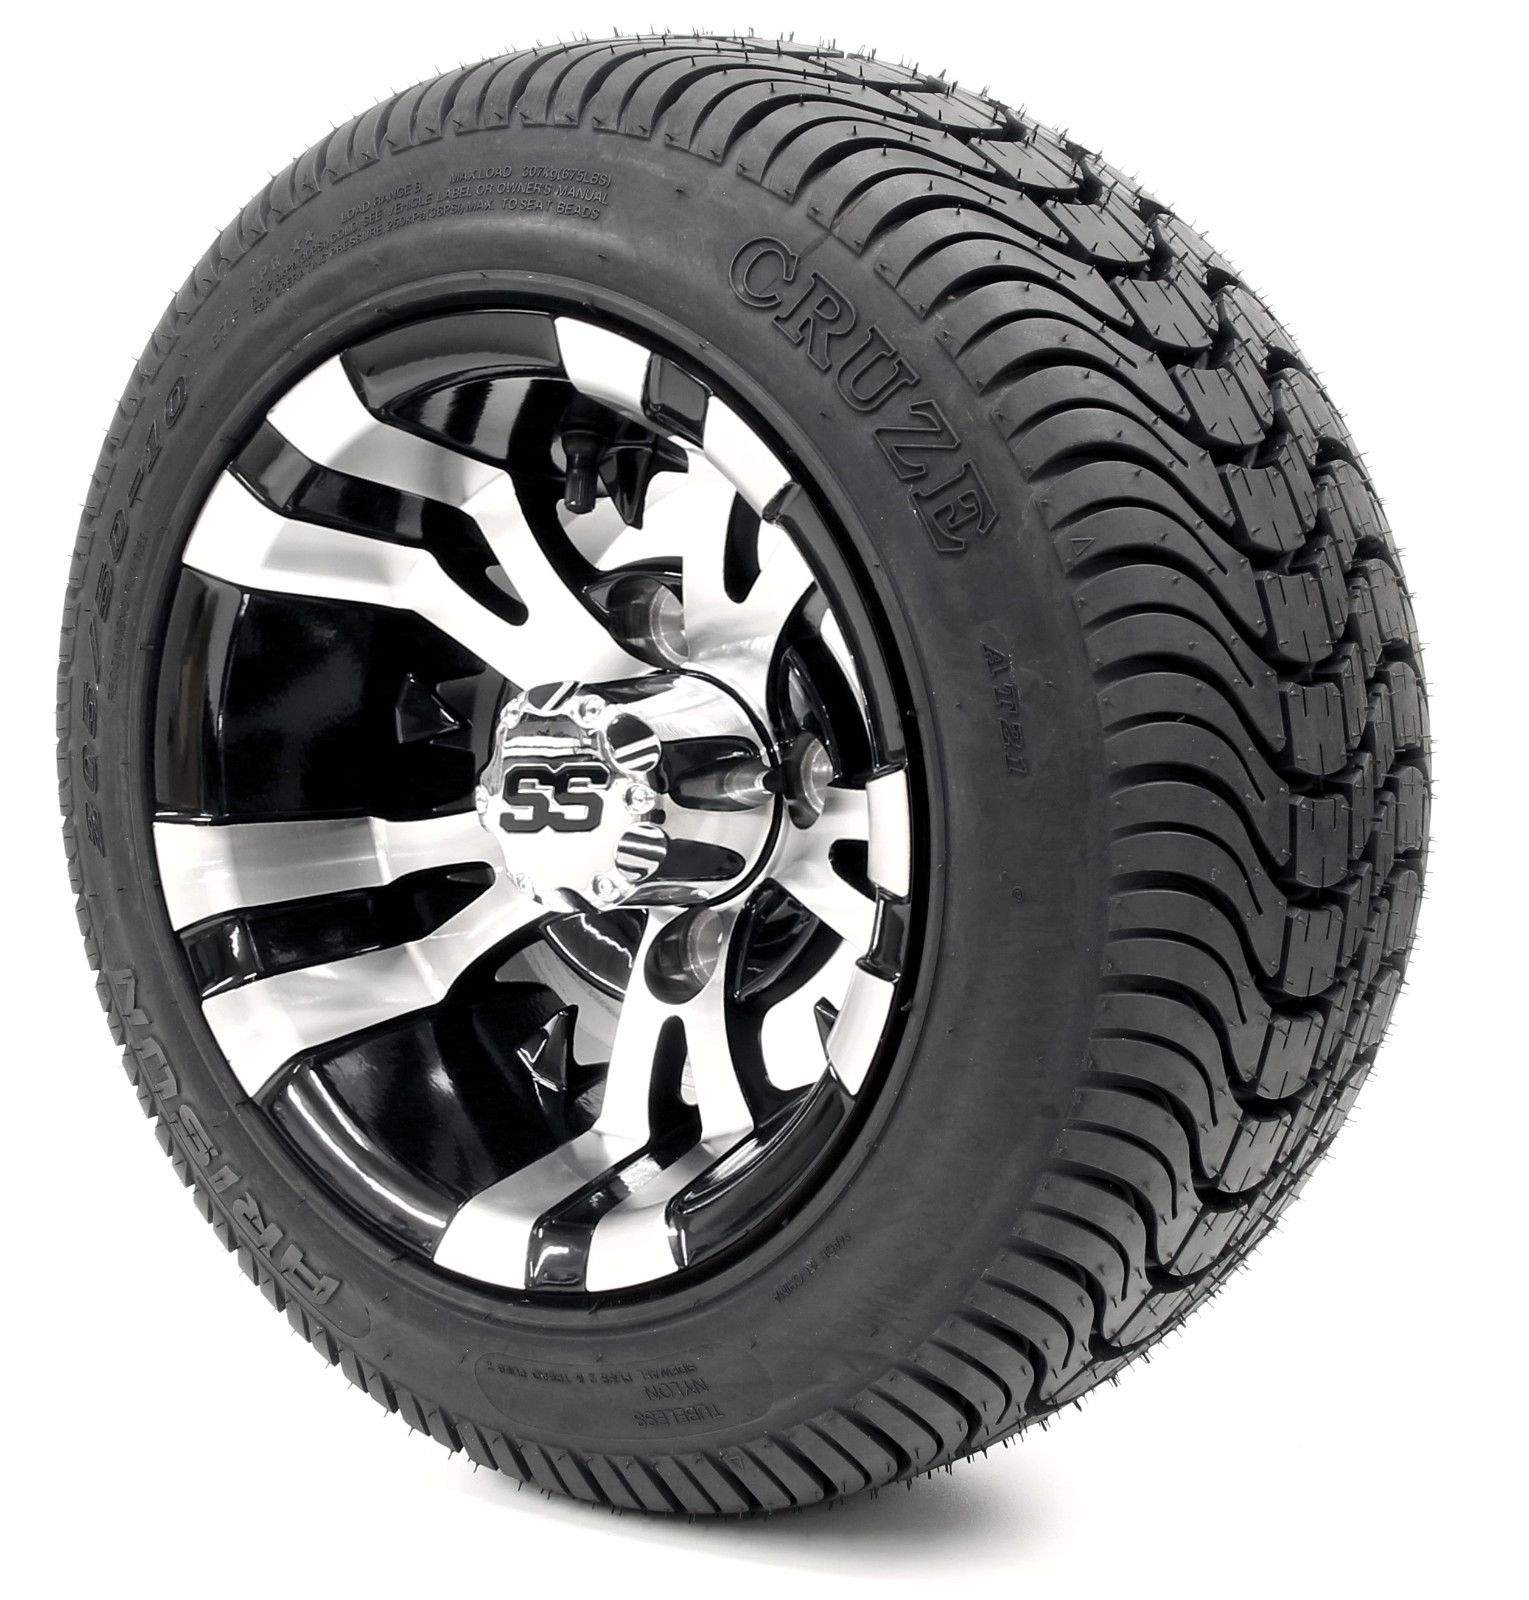 Golf Cart Wheels And Tires Combo 10 Vampire Ss W Low Pro Tires Set Of 4 Ebay